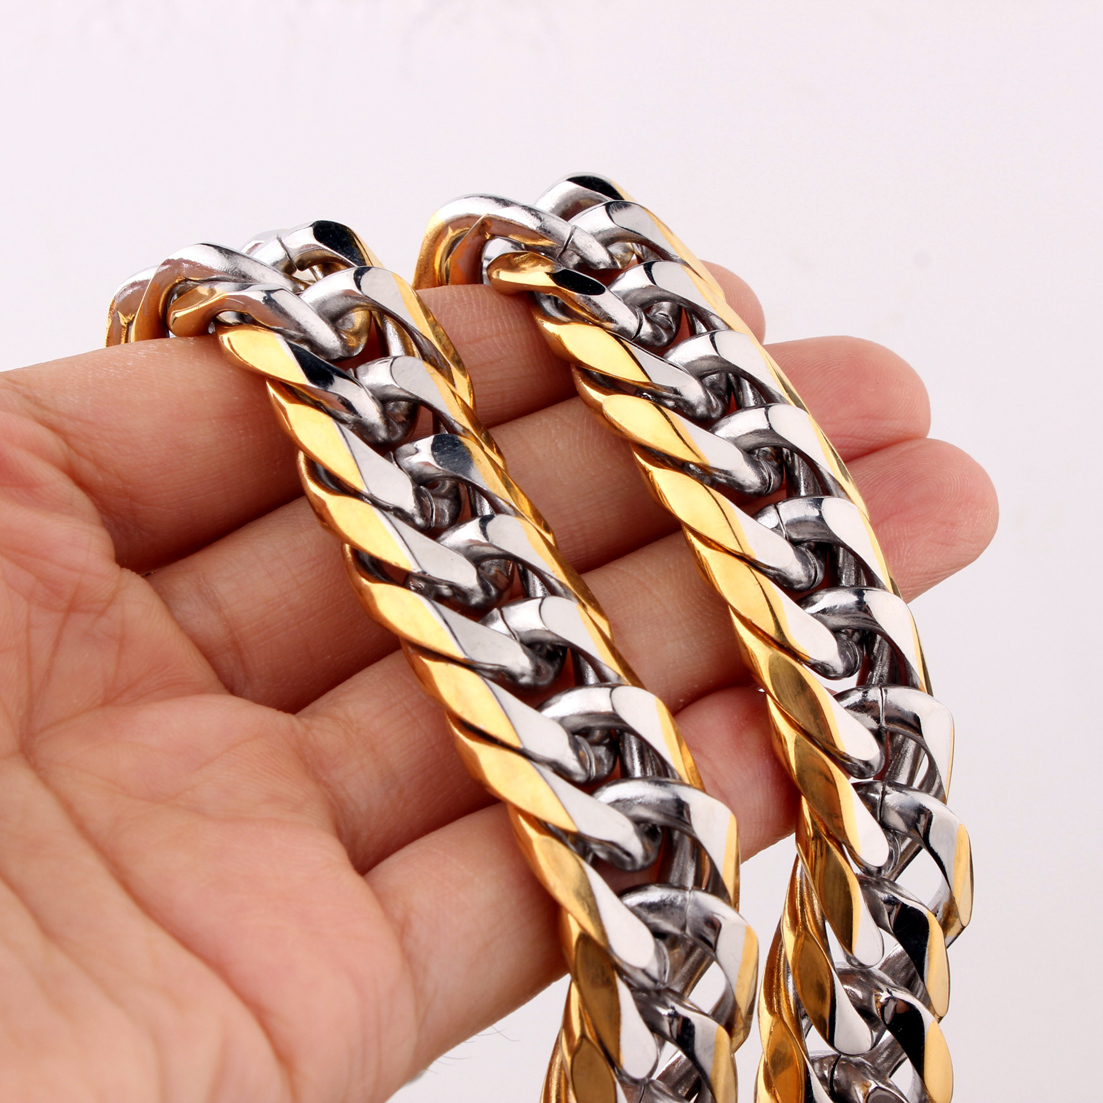 Punk Hip hop 13 16mm Cuban Link Silver Gold Chain Rapper Men Necklaces Street Fashion Popular Long Chain Jewelry Present in Chain Necklaces from Jewelry Accessories